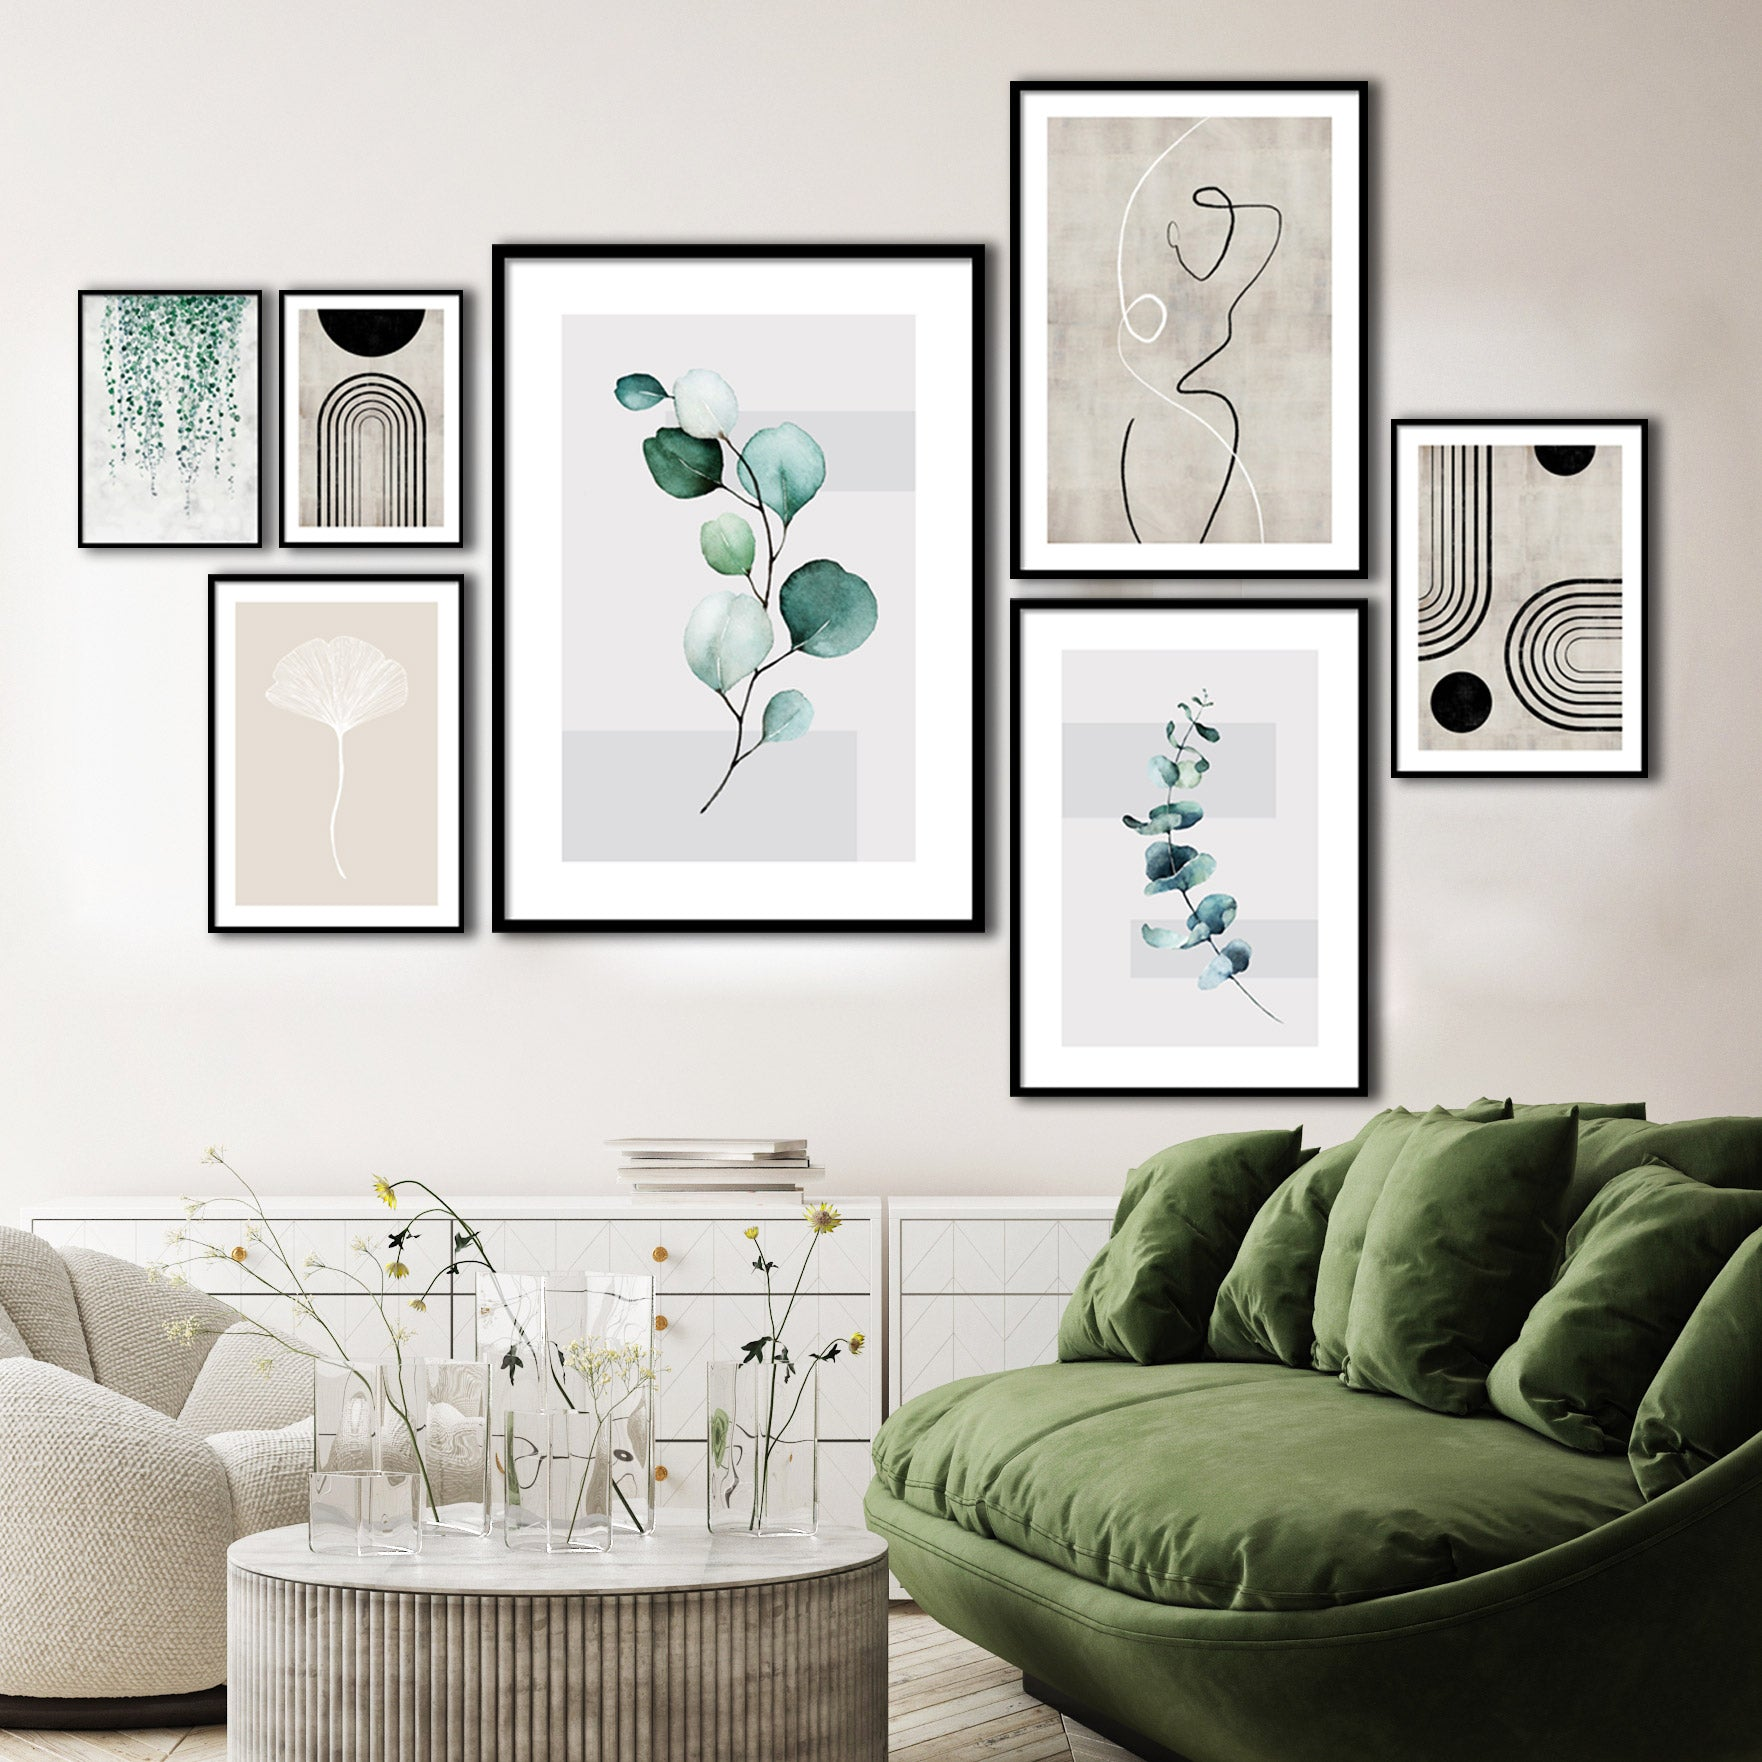 ELEGANT GREENS GALLERY WALL